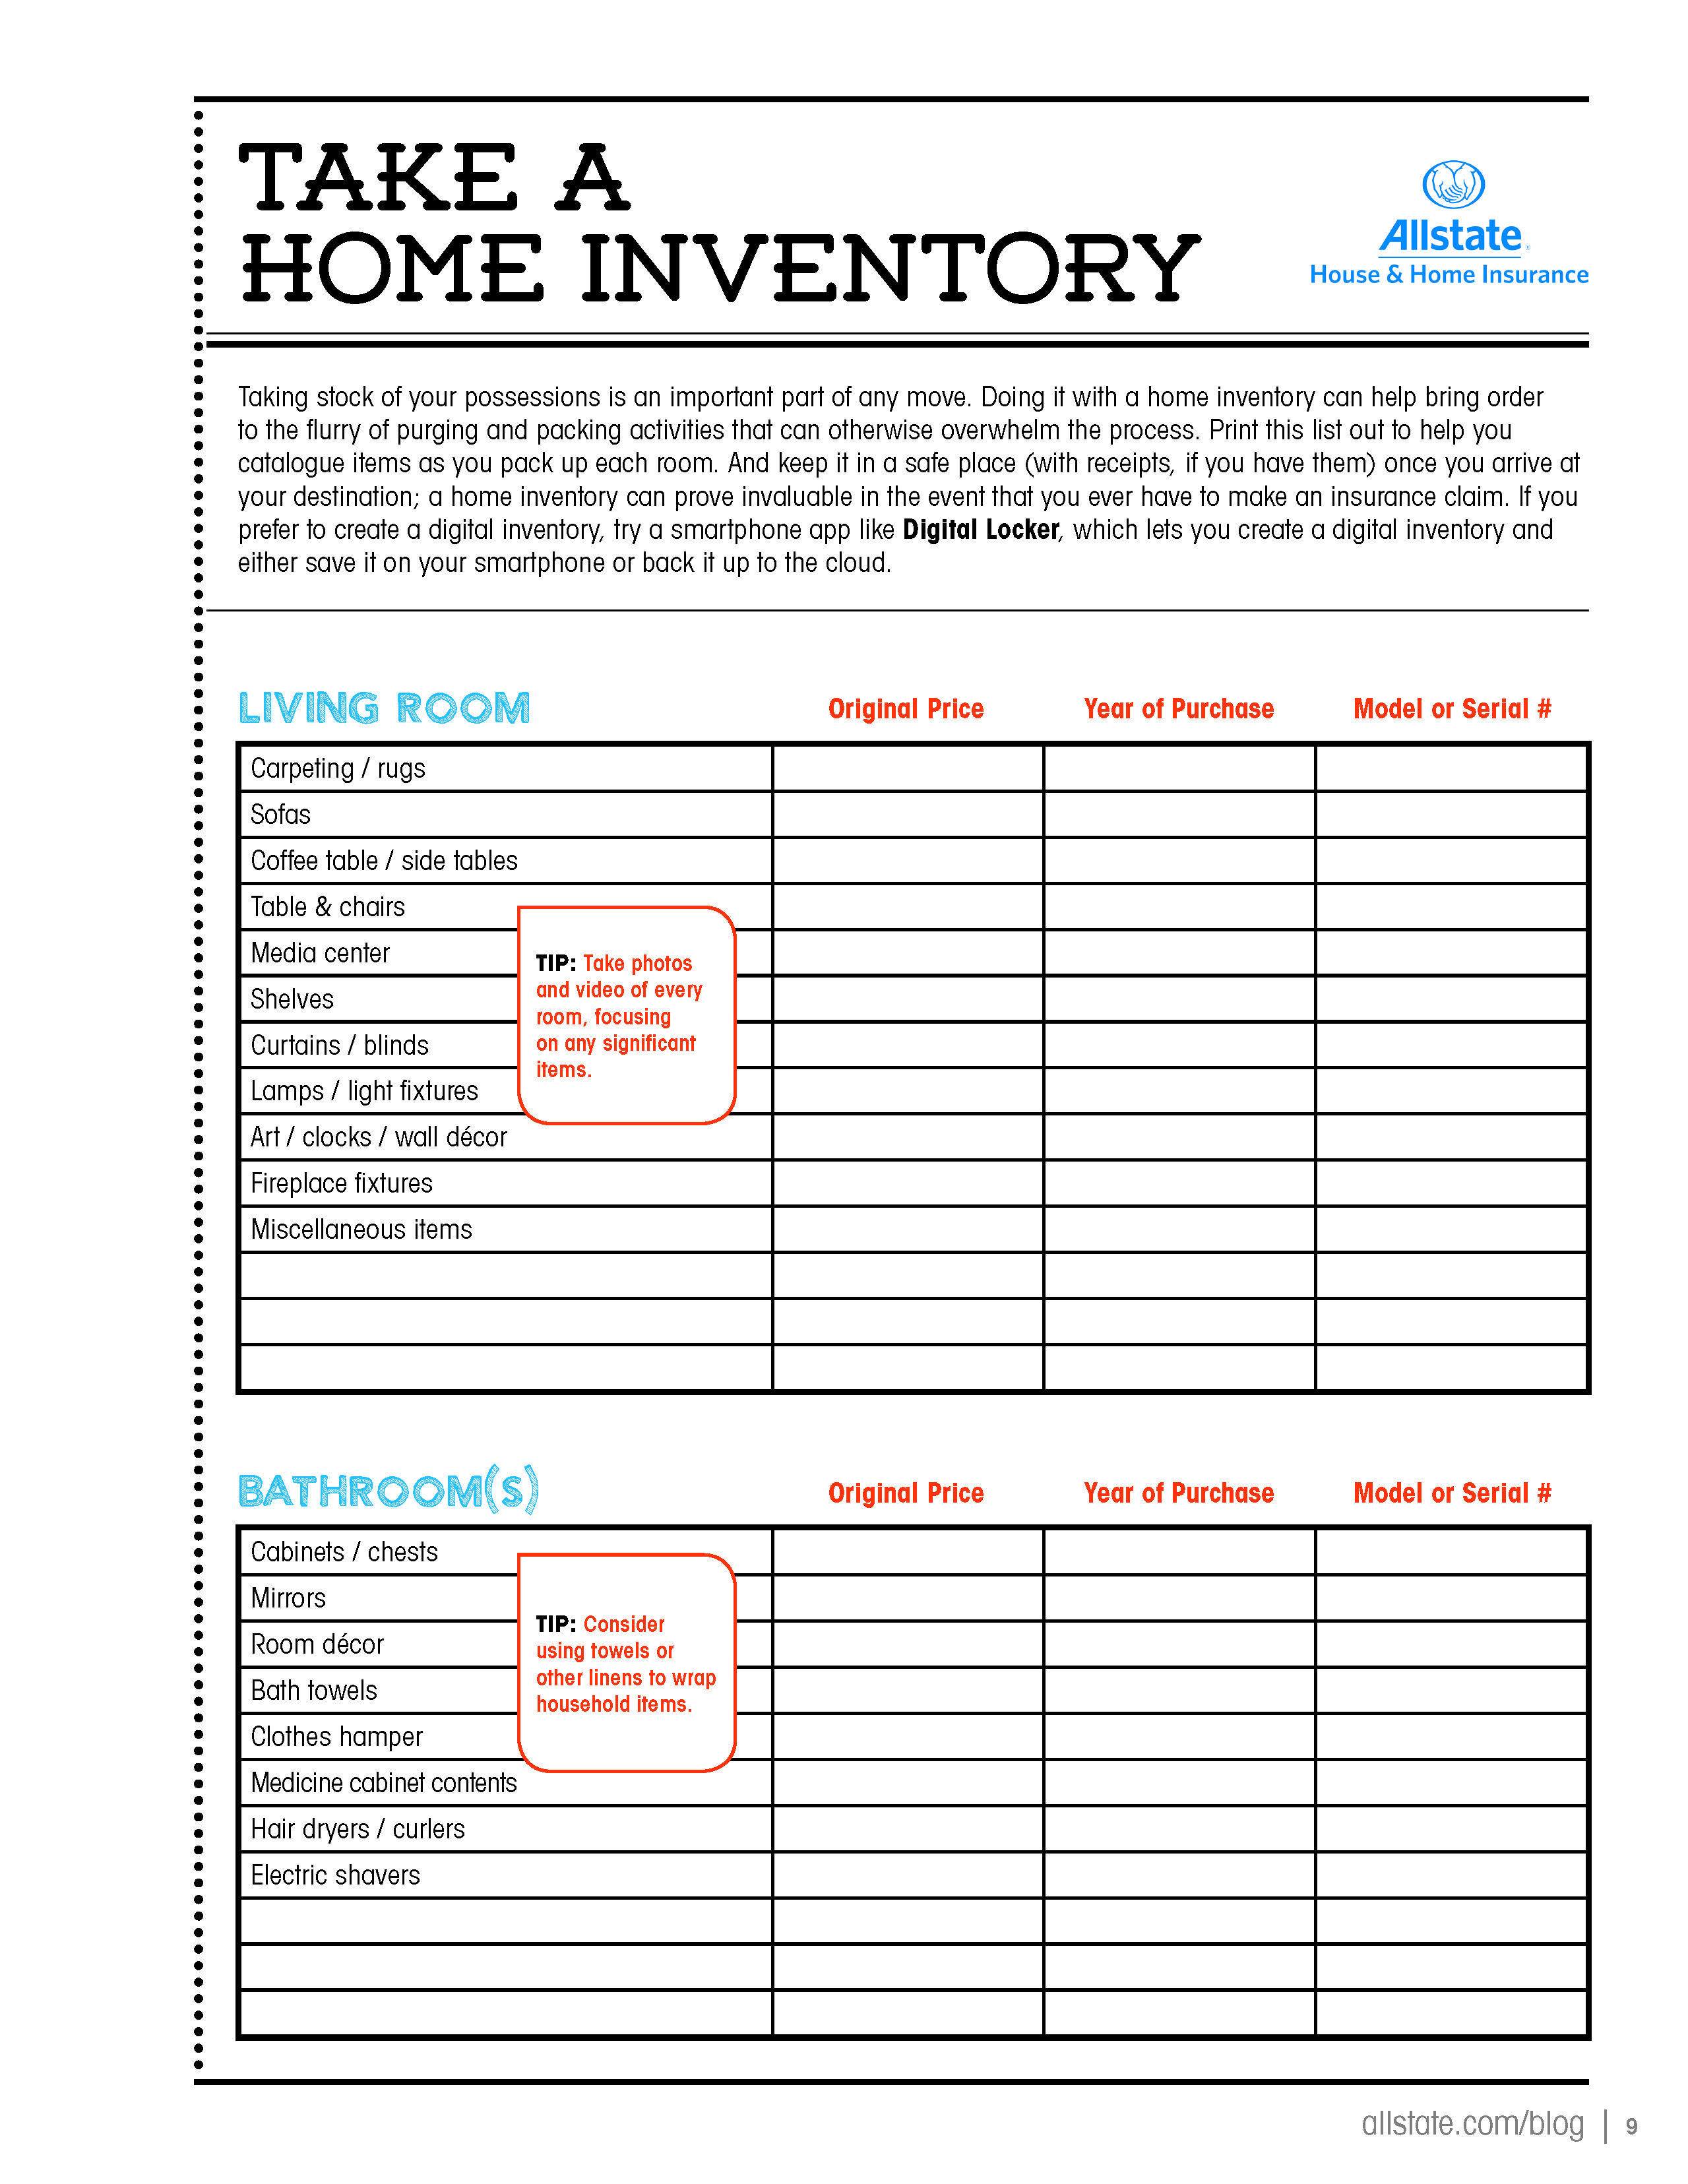 Take A Home Inventory Page 1 Of 5 Loveyourhome Home Inventory Moving Guide Moving Day